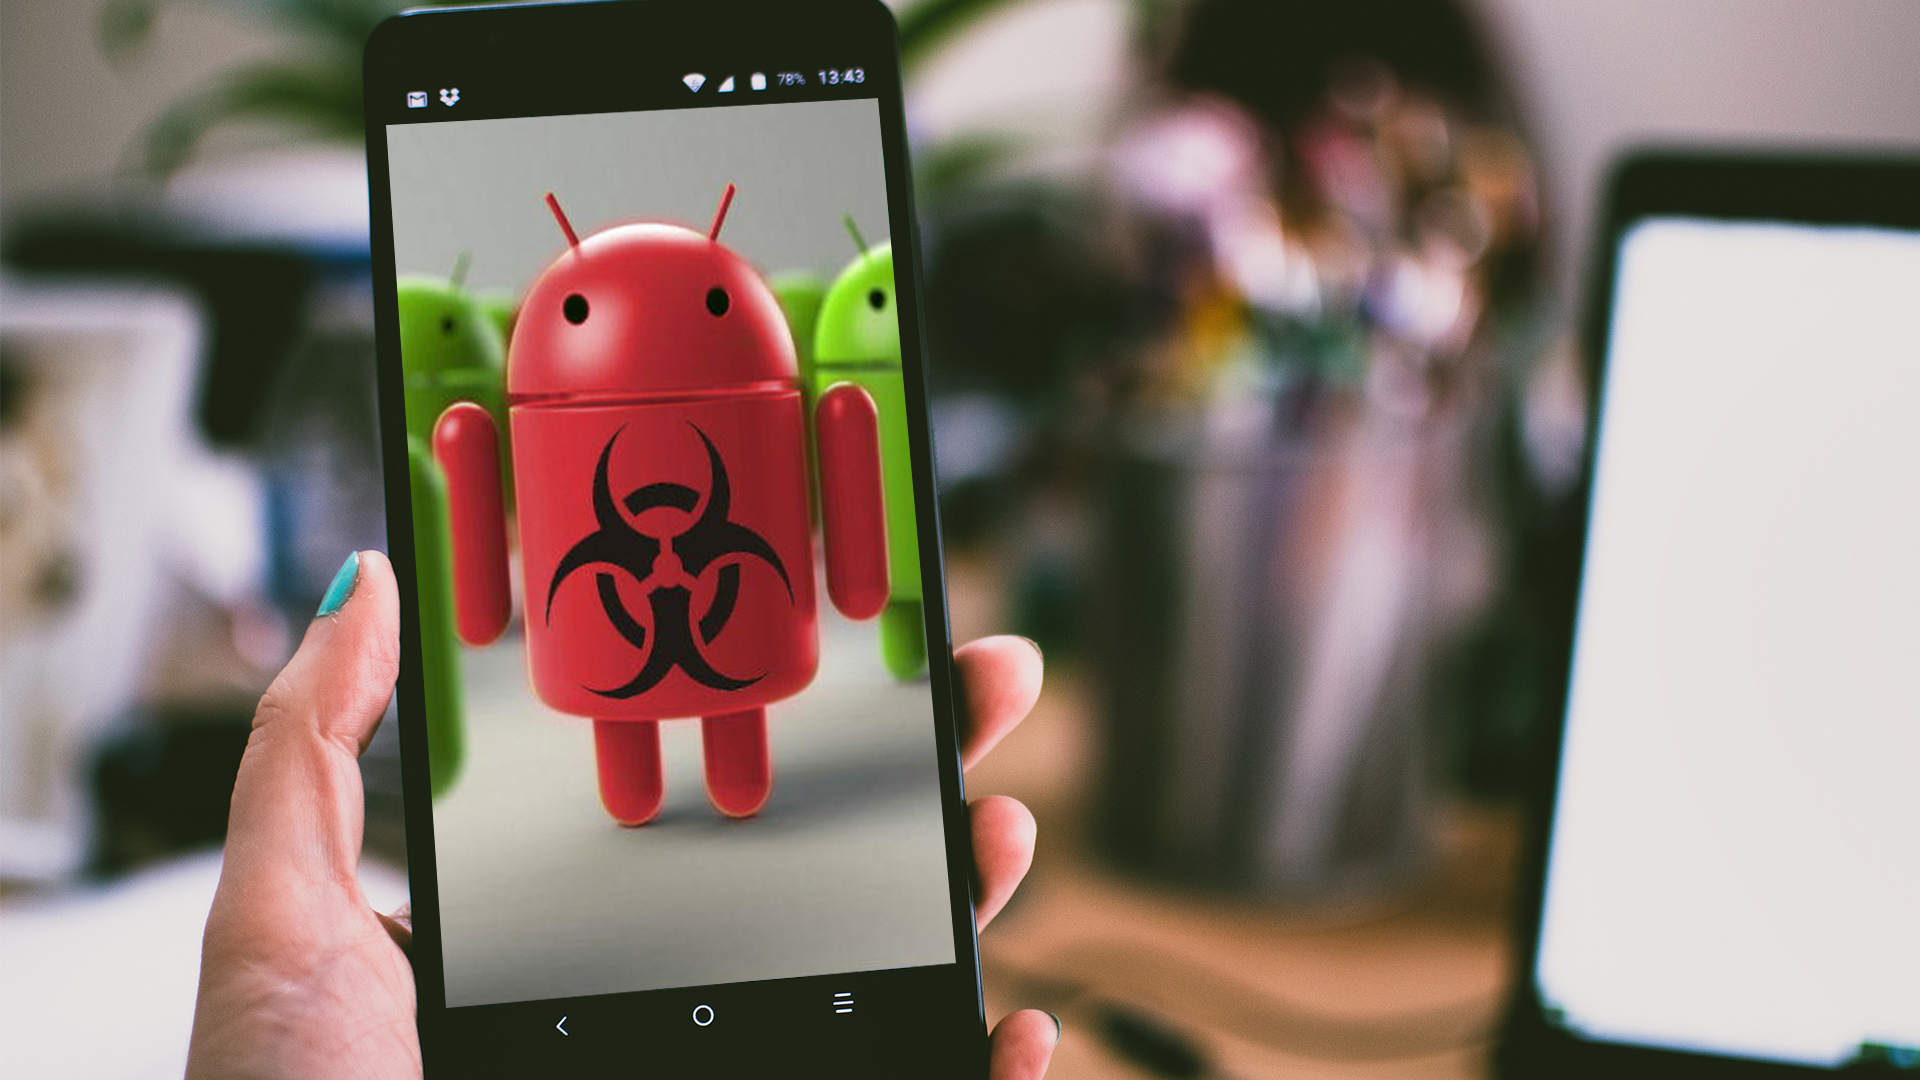 Android backdoor malware used for espionage against the Kurdish ethnic group